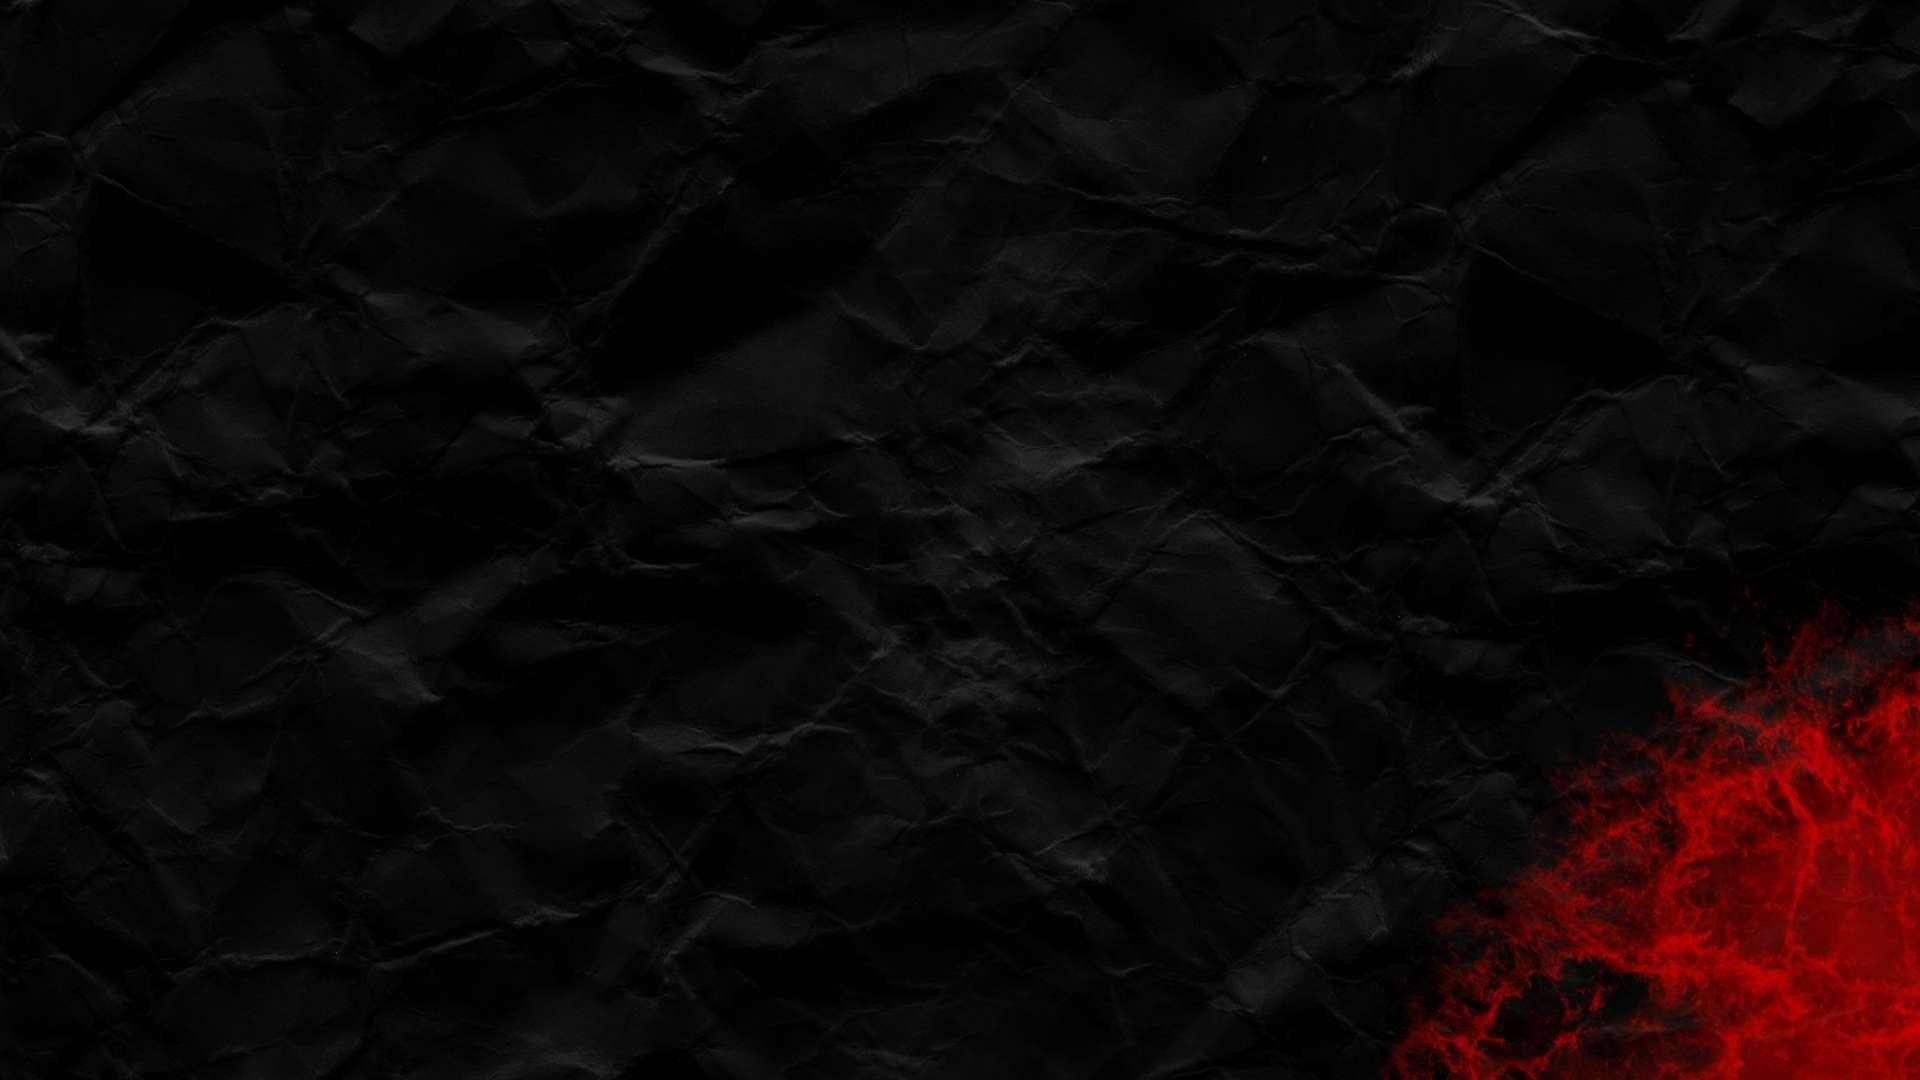 1920x1080 Black and Red Wallpaper 1920x1080 (75+ images)